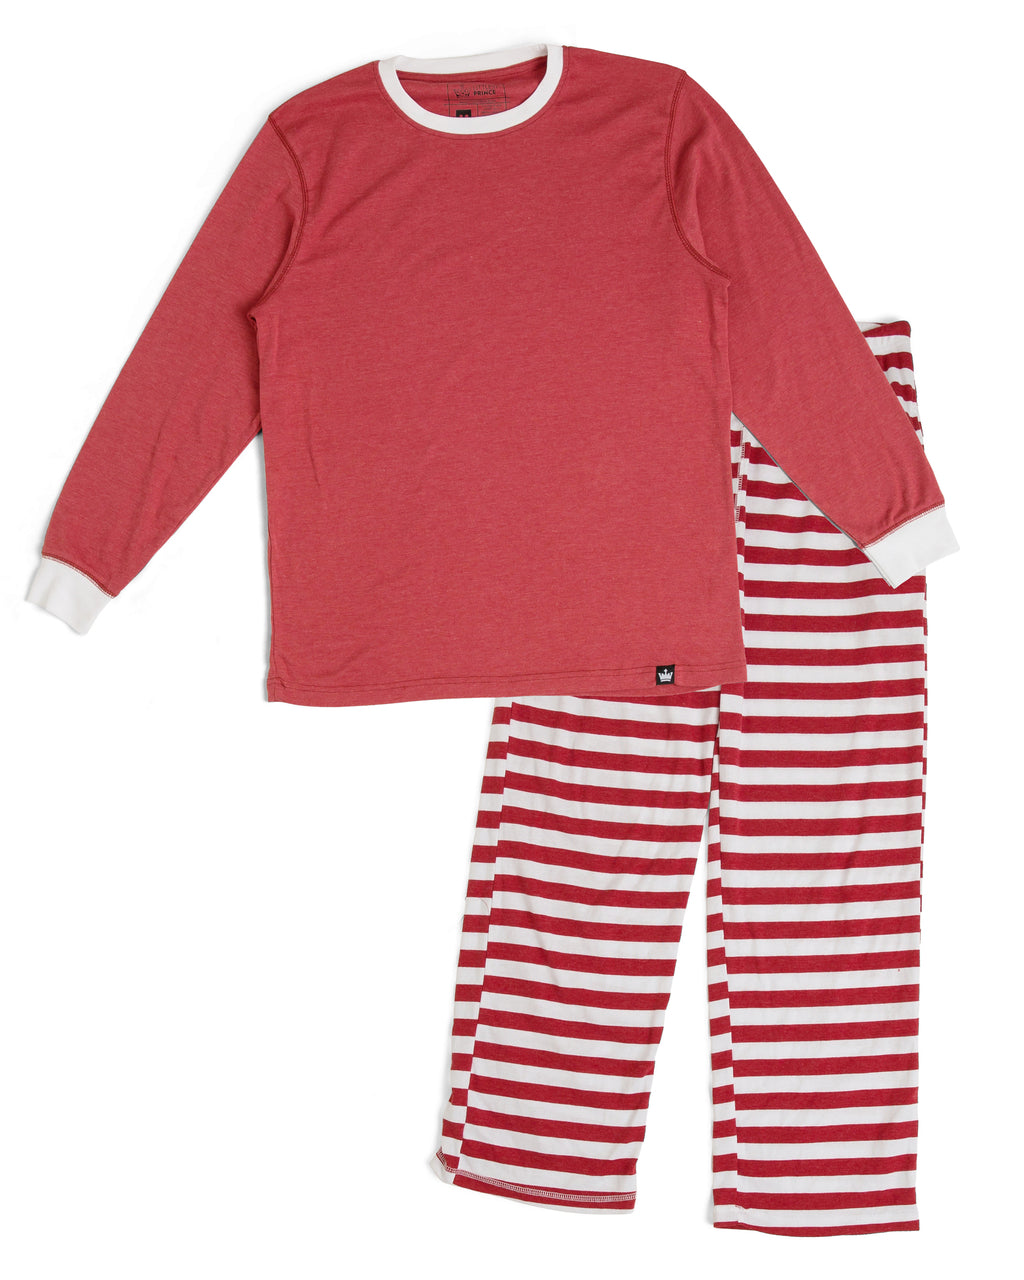 0a49e7a3af Candy Cane Red Stripe Men s Pajama Set - Red Top  Matching Family Paja – Twinsies  Rock